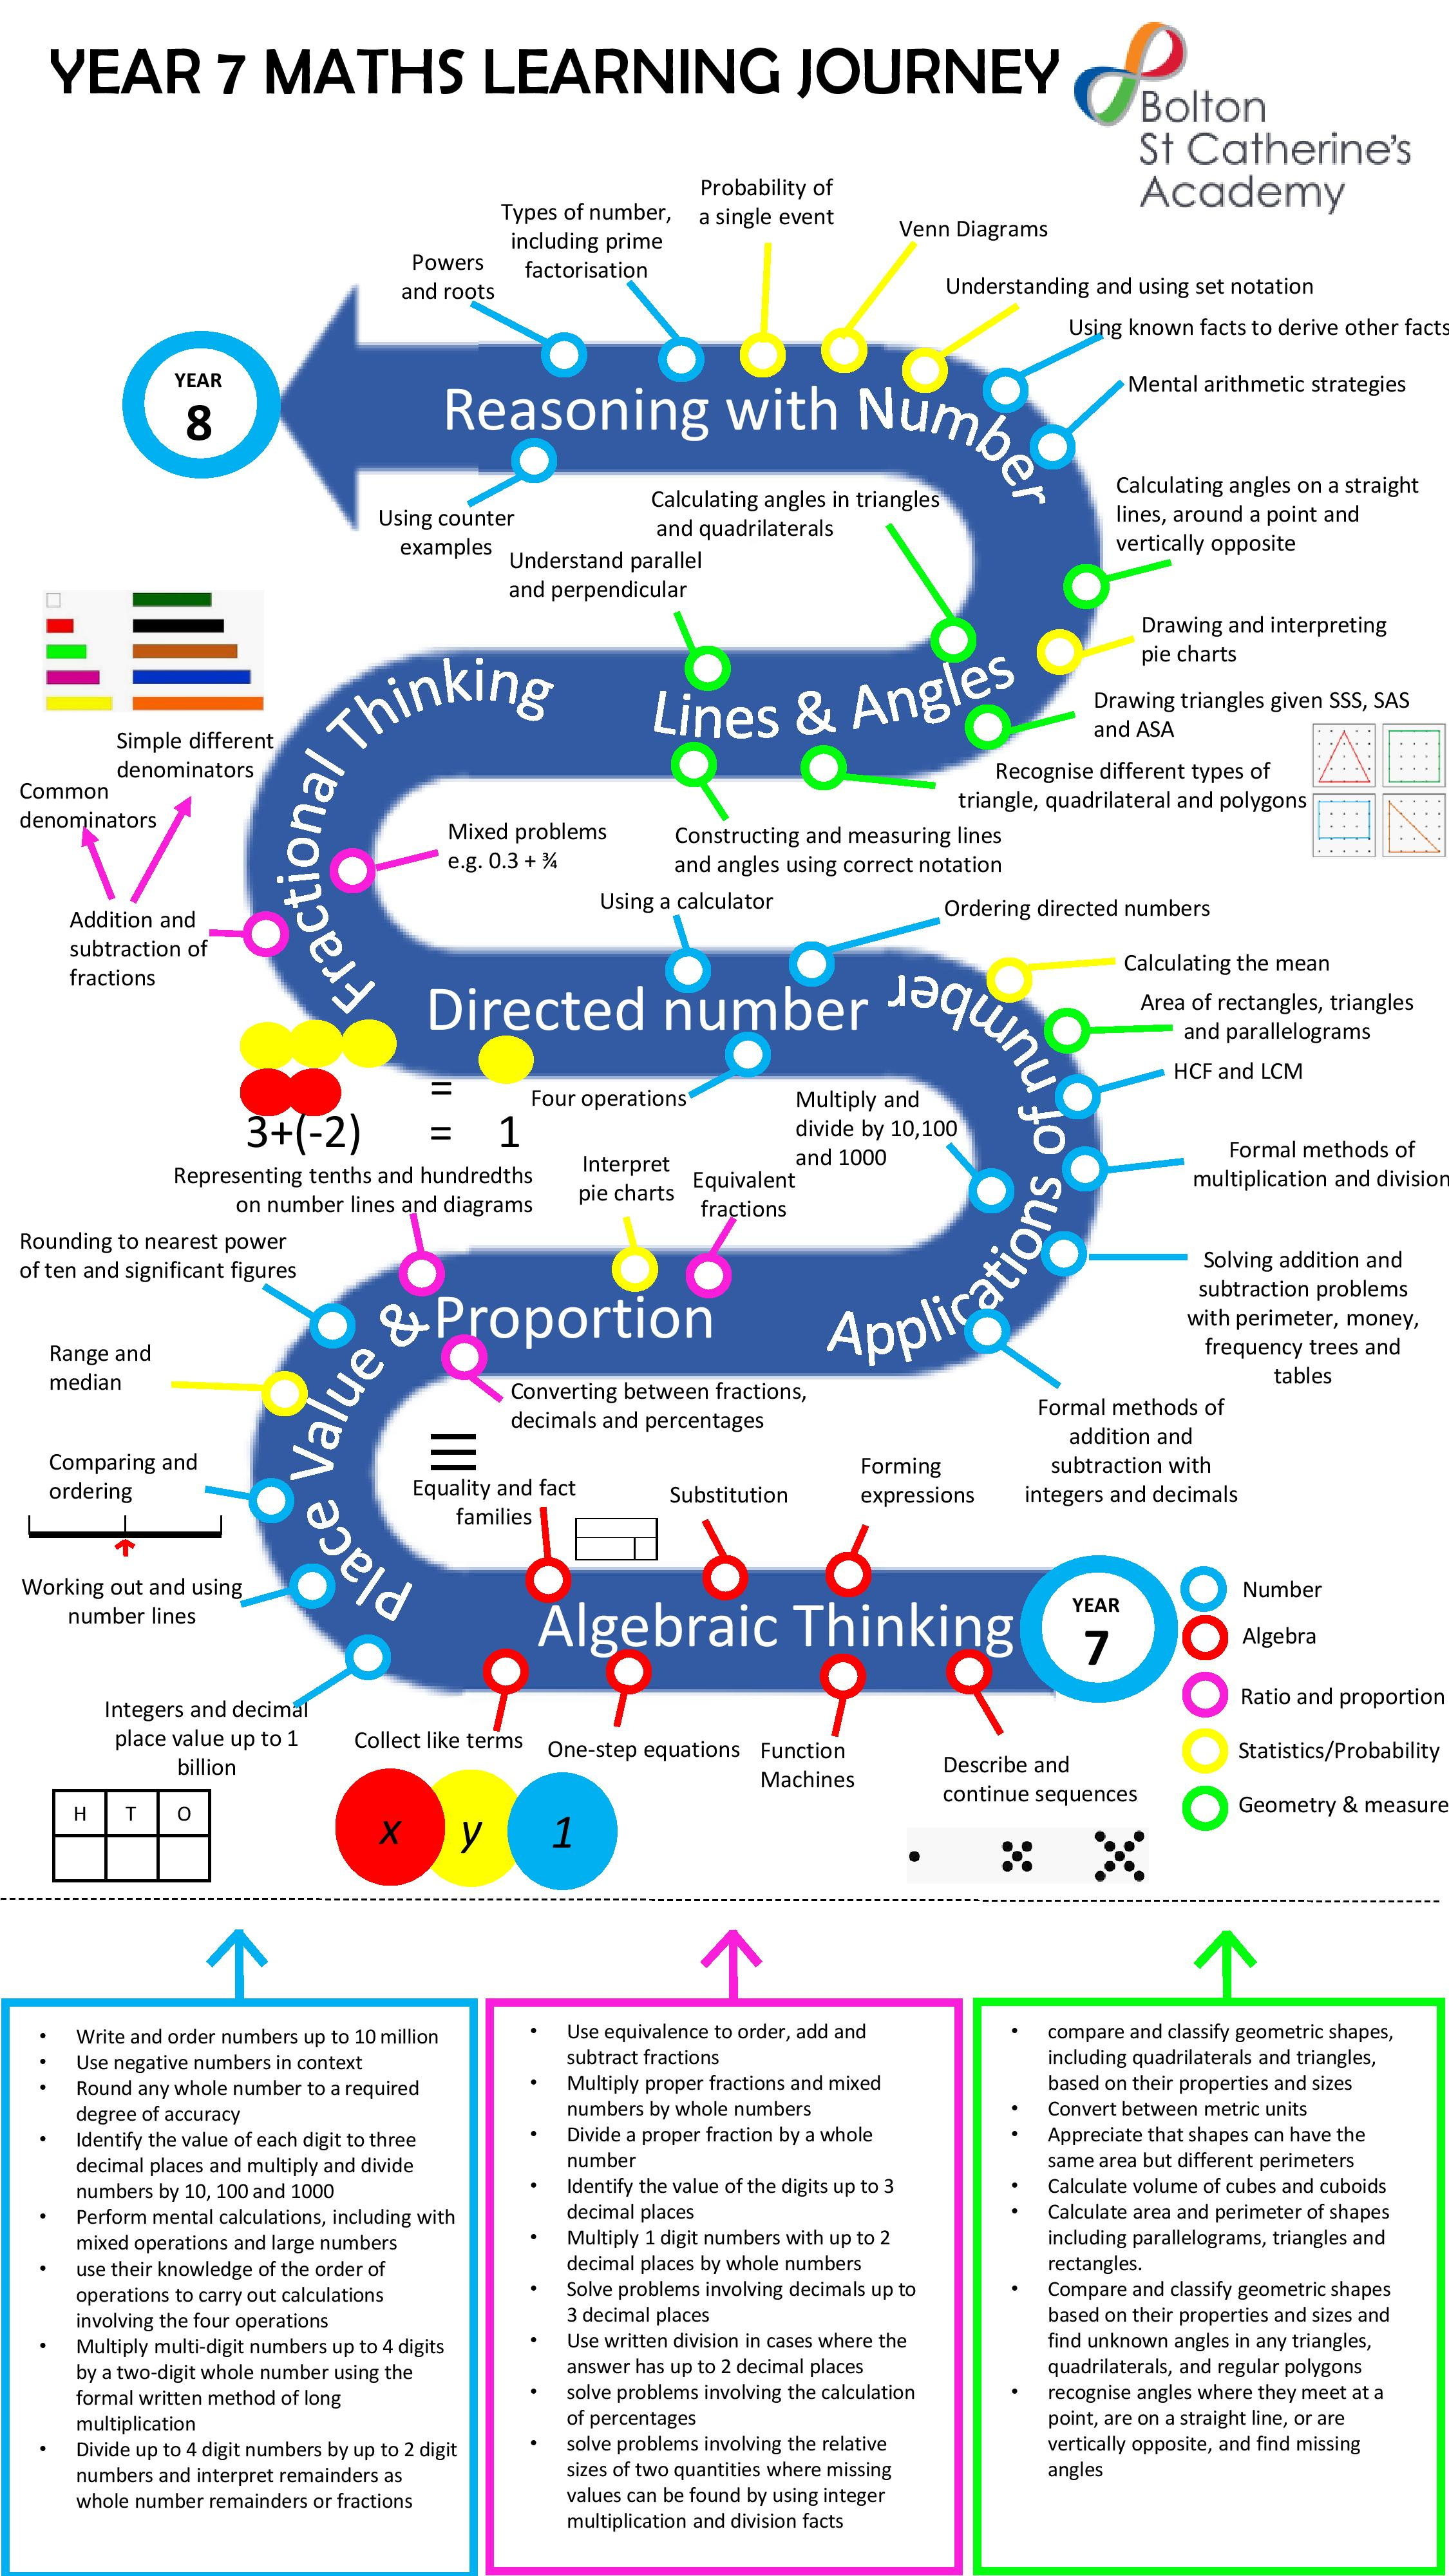 Year 7 BSCA Maths New White Rose Pathway-page-001.jpg